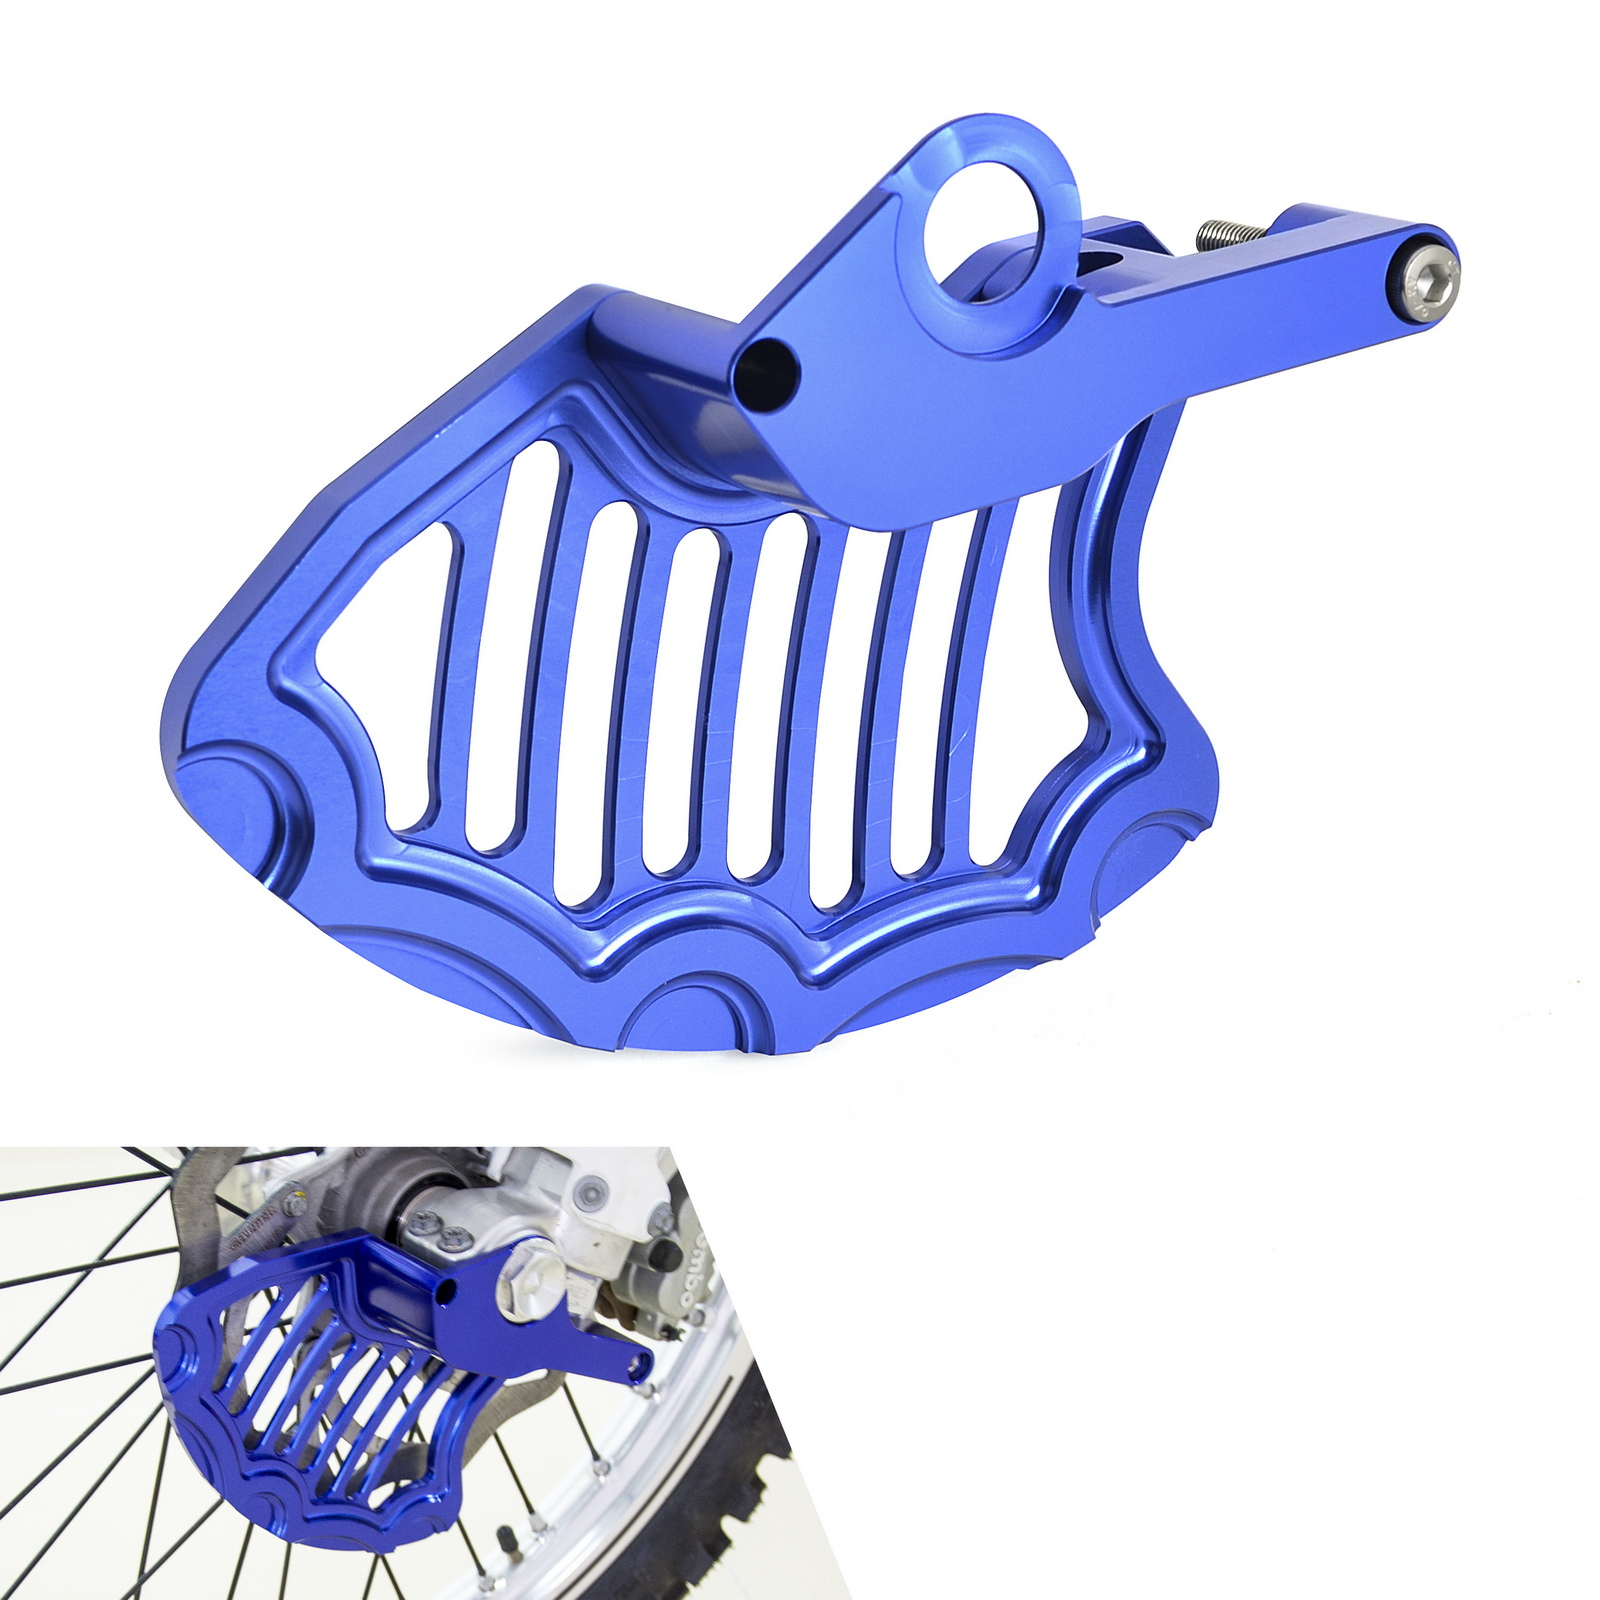 Motorcycle Front Brake Disc Rotor Protector Guard For <font><b>Husqvarna</b></font> FE FC <font><b>TE</b></font> TC FX 125 200 250 <font><b>300</b></font> 350 450 501 2016 2017 2018 <font><b>2019</b></font> image